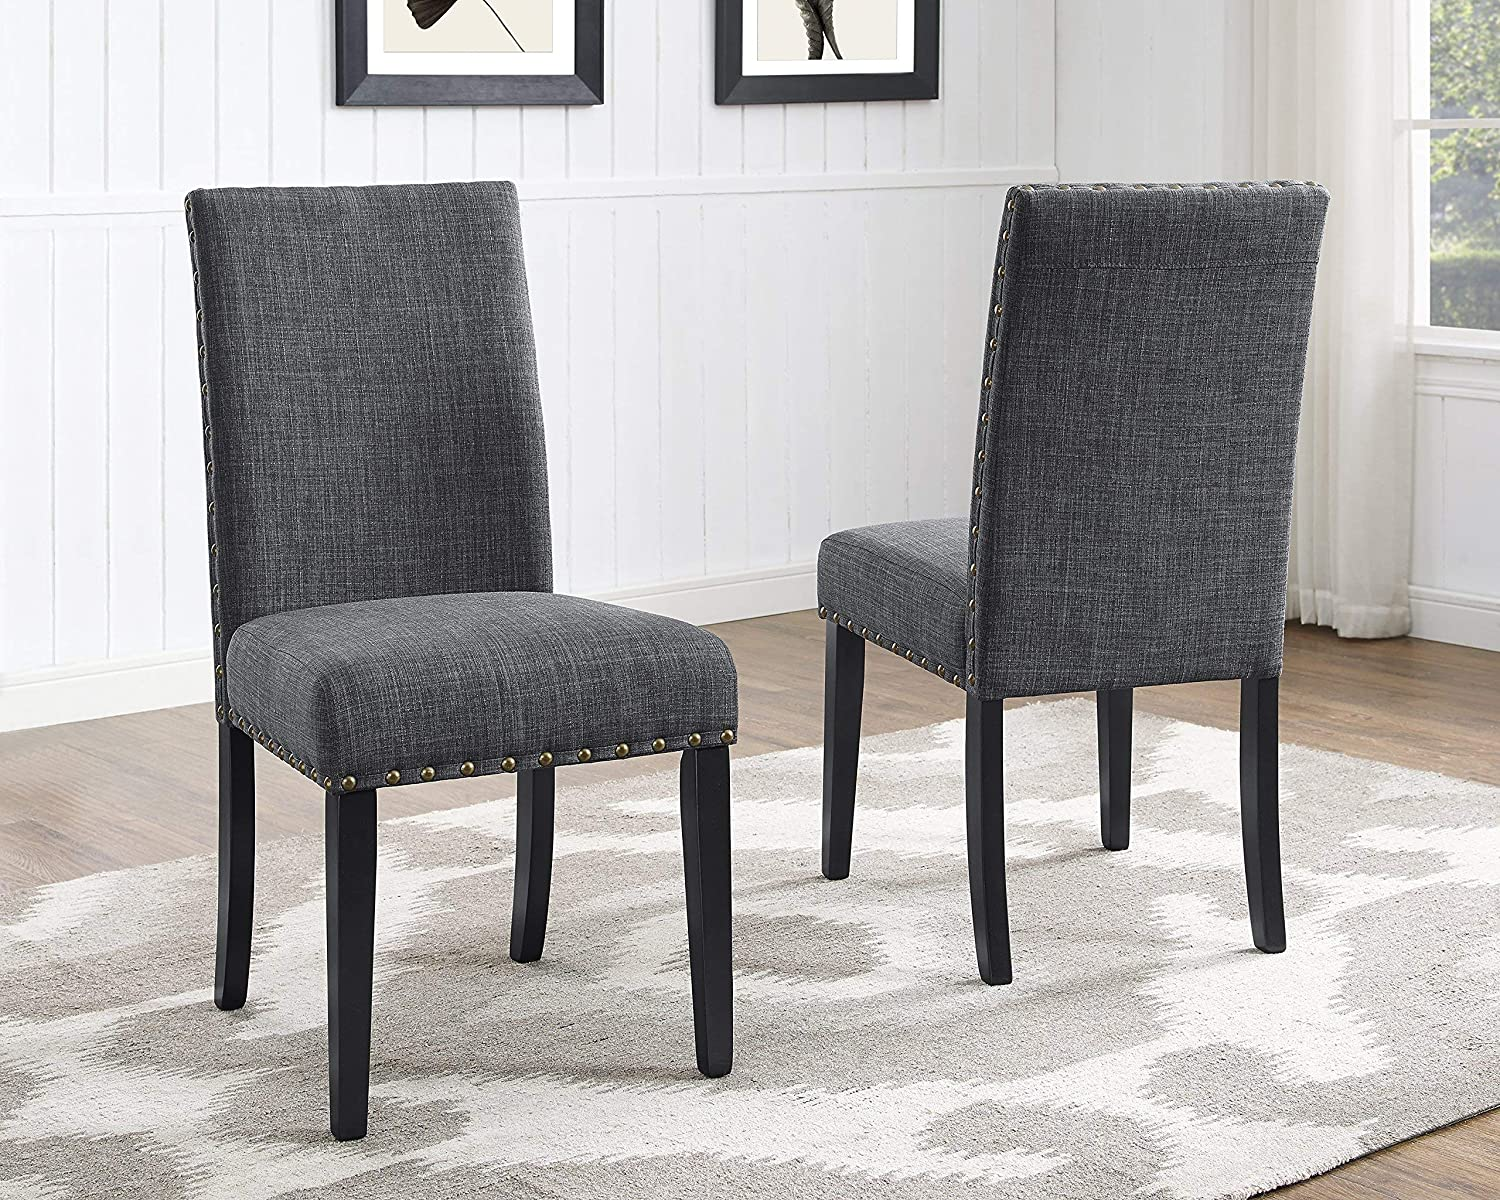 Roundhill Furniture Biony Gray Fabric Dining Chairs with Nailhead Trim, Set of 2 - Chairs